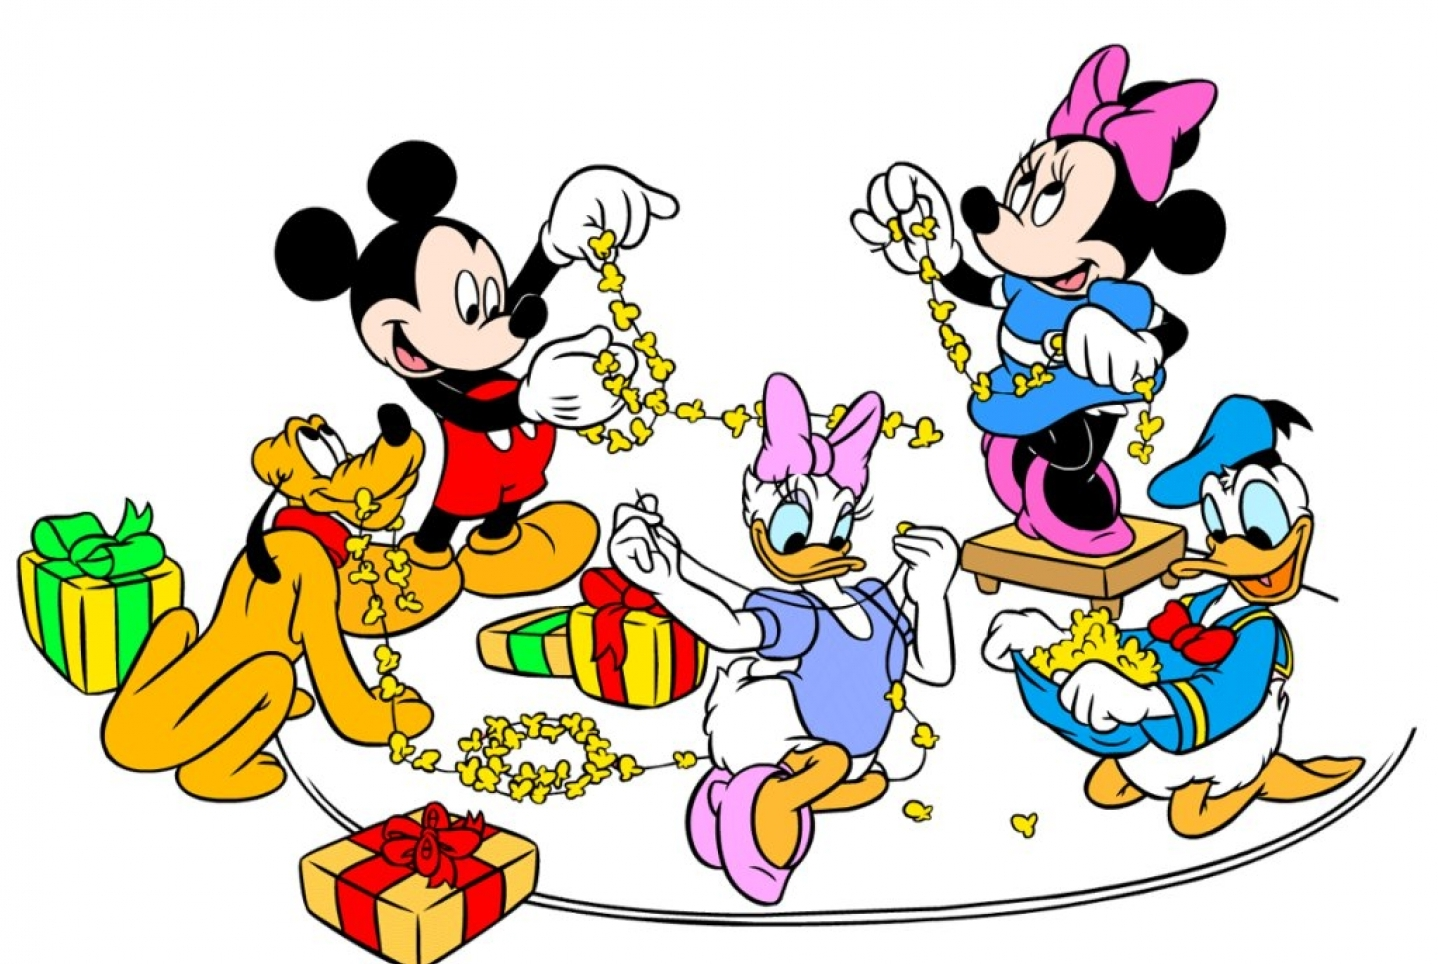 Wallpaper Mickey Mouse Minnie Mouse Daisy Duck And Donald Duck Picture Wallpaper Mickey Mouse Minnie Mouse Daisy Duck And Donald Duck Wallpaper